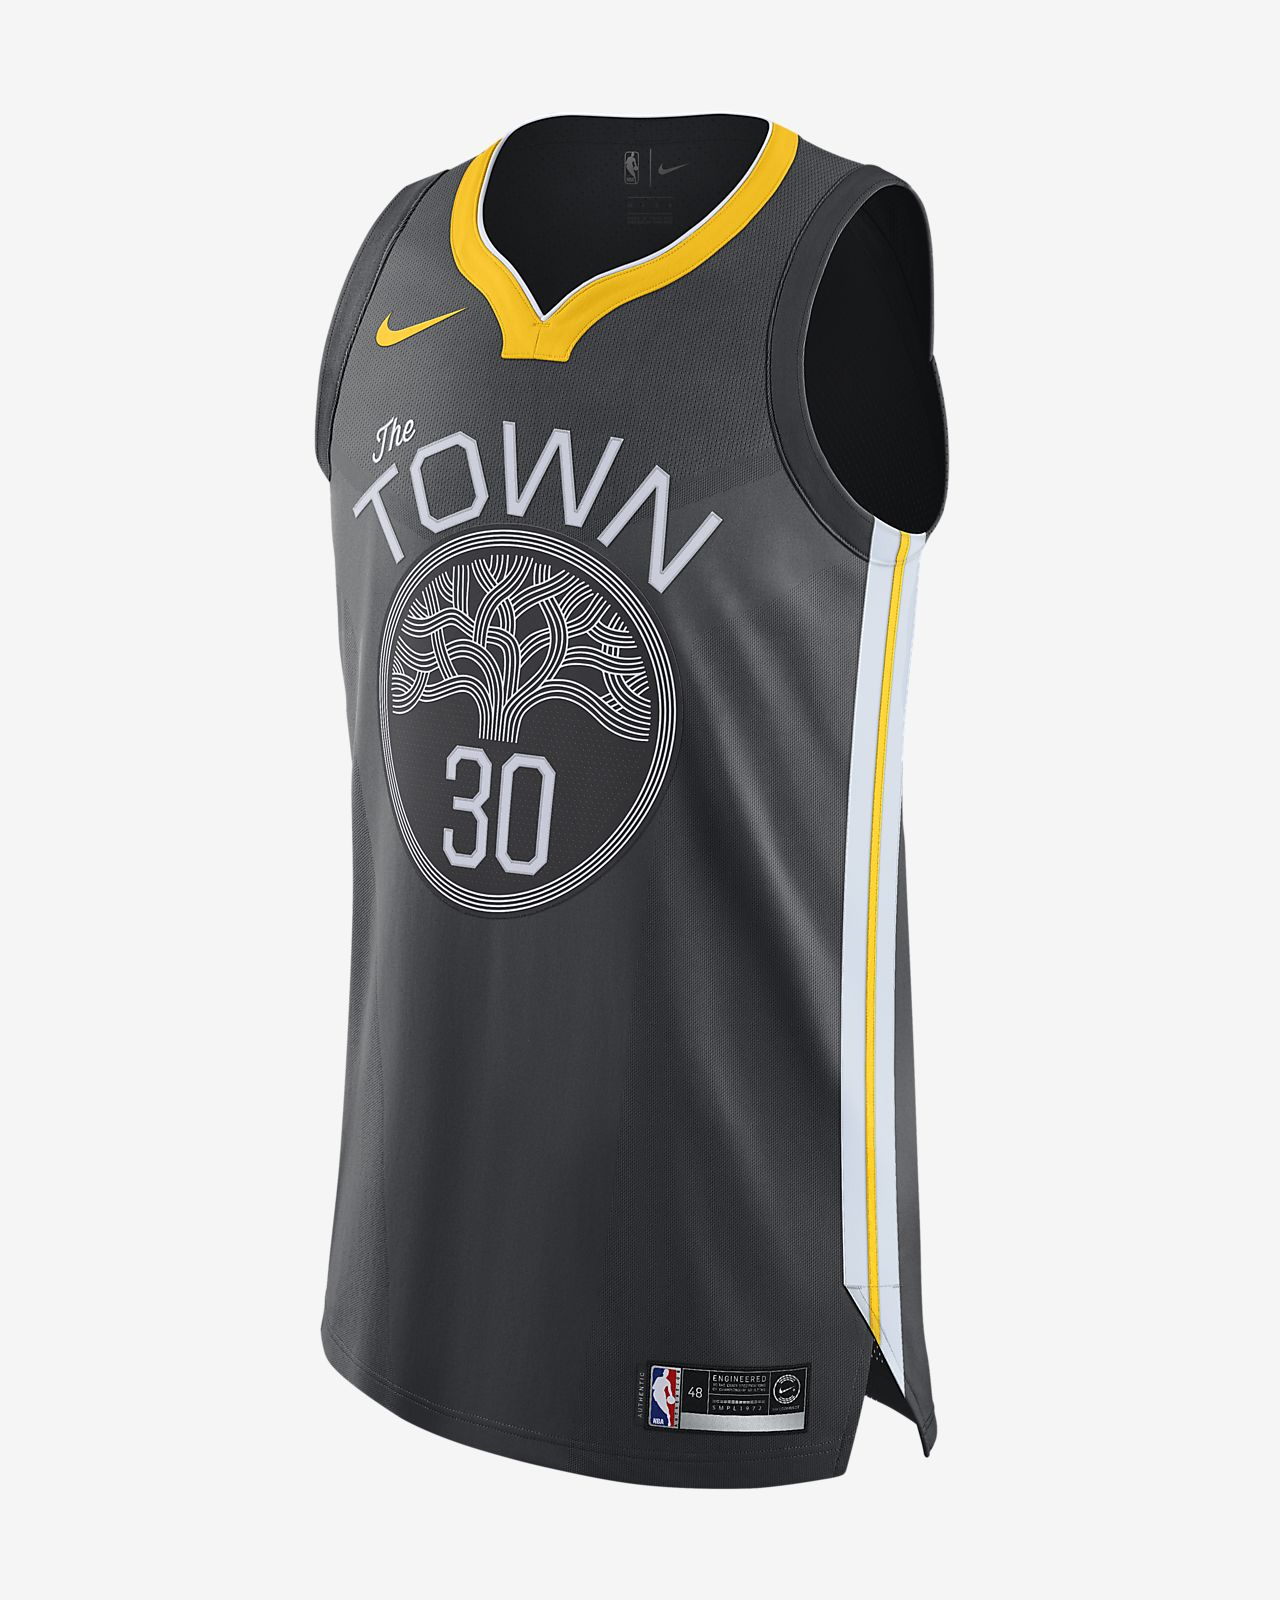 e23fbd928025 Men s Nike NBA Connected Jersey. Stephen Curry Statement Edition Authentic (Golden  State Warriors)